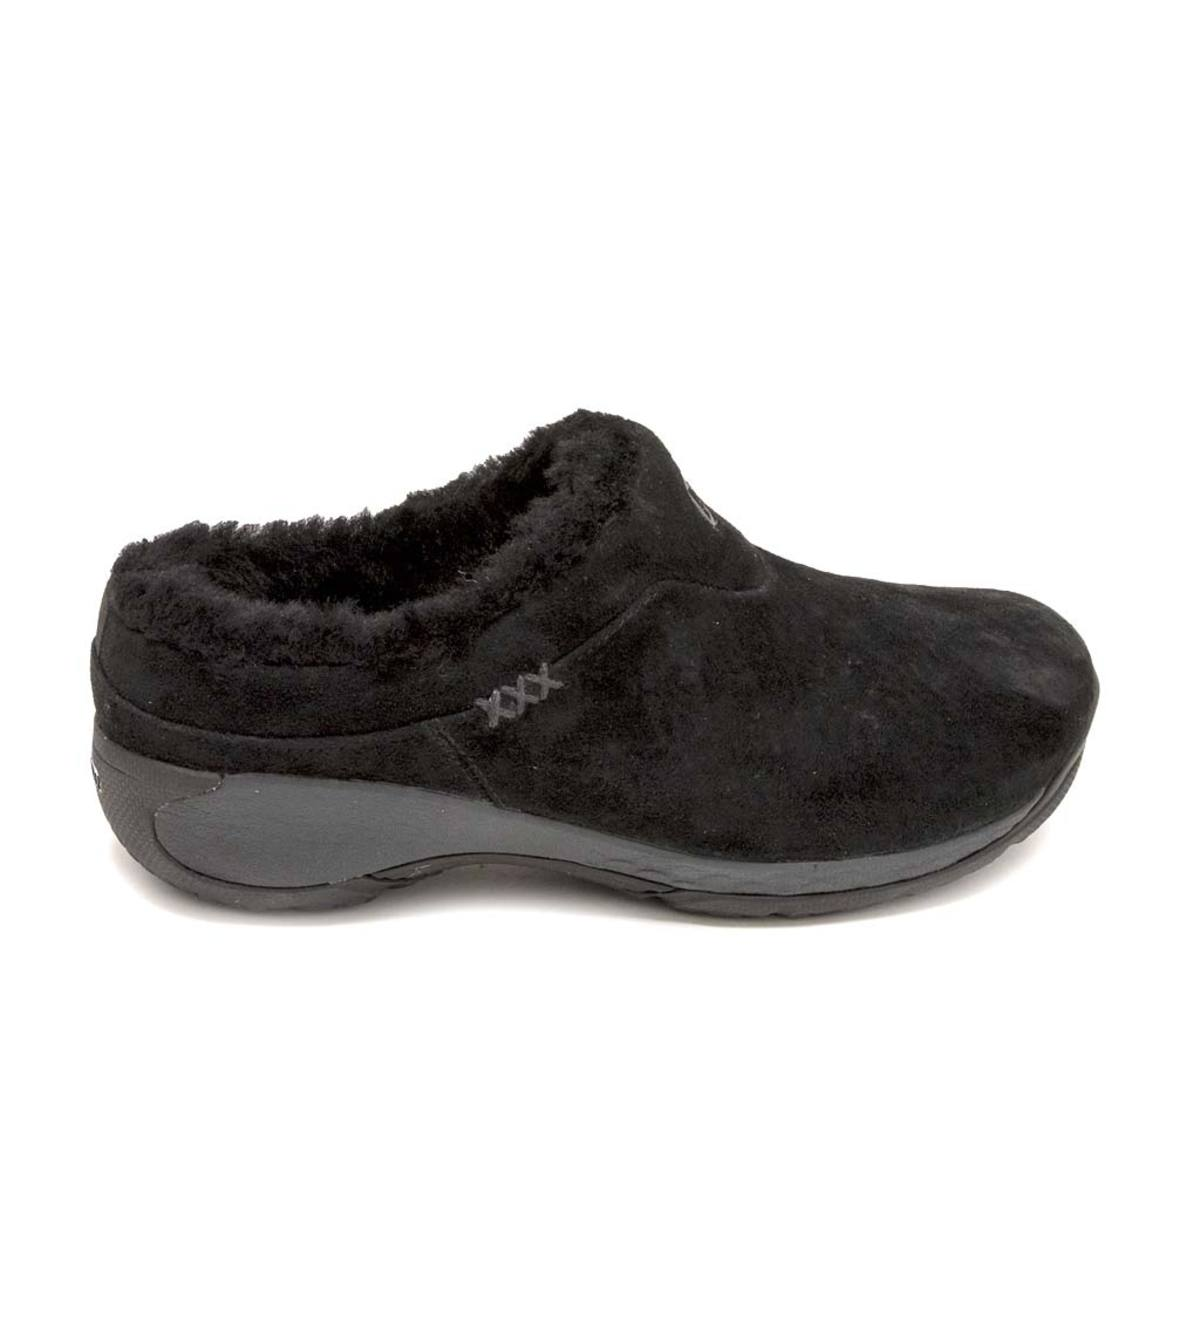 Merrell Women's Encore Q2 Ice Slip On - Black - Size 6